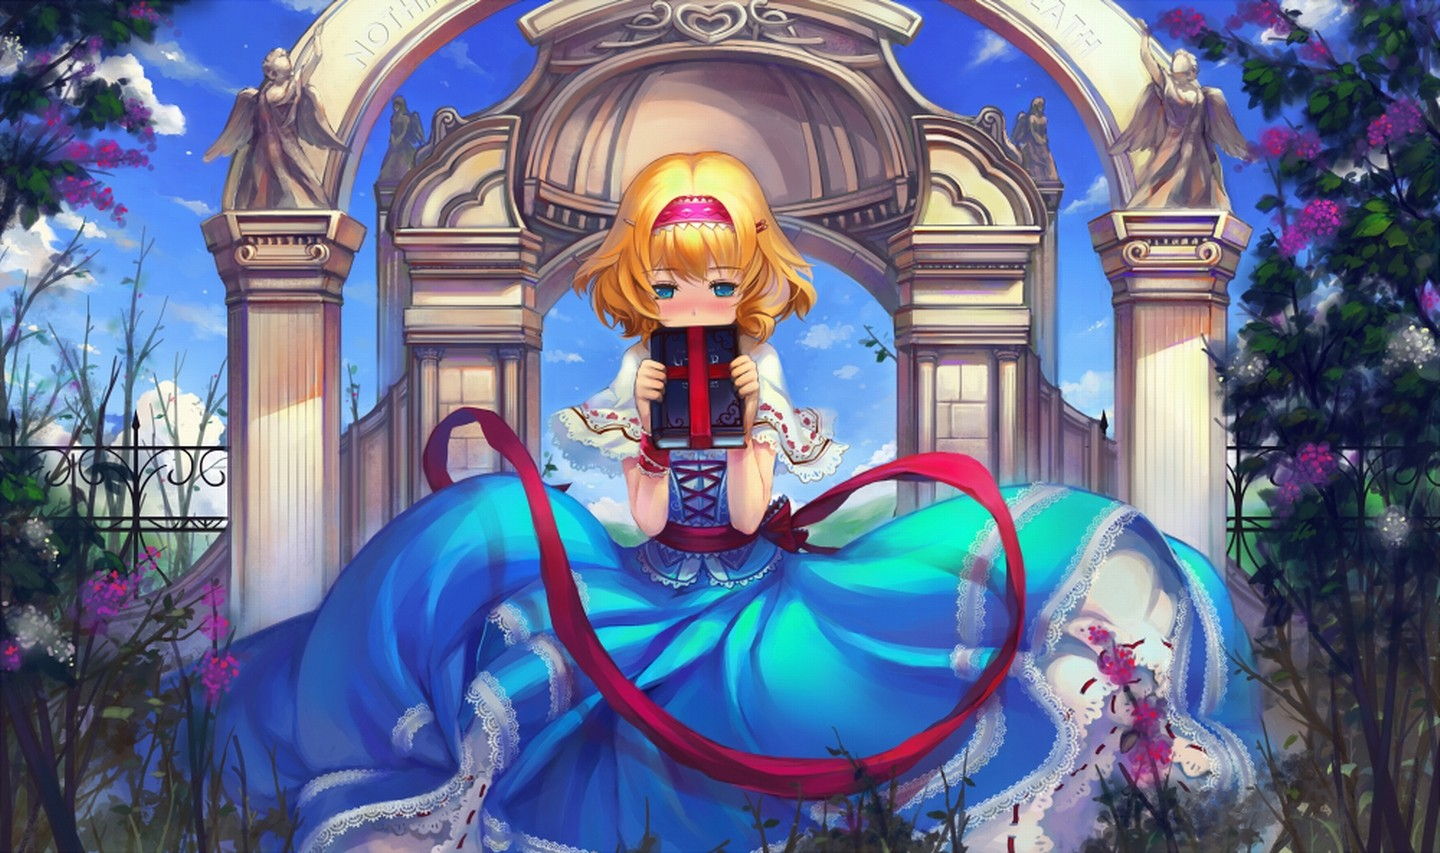 touhou images touhou hd wallpaper and background photos